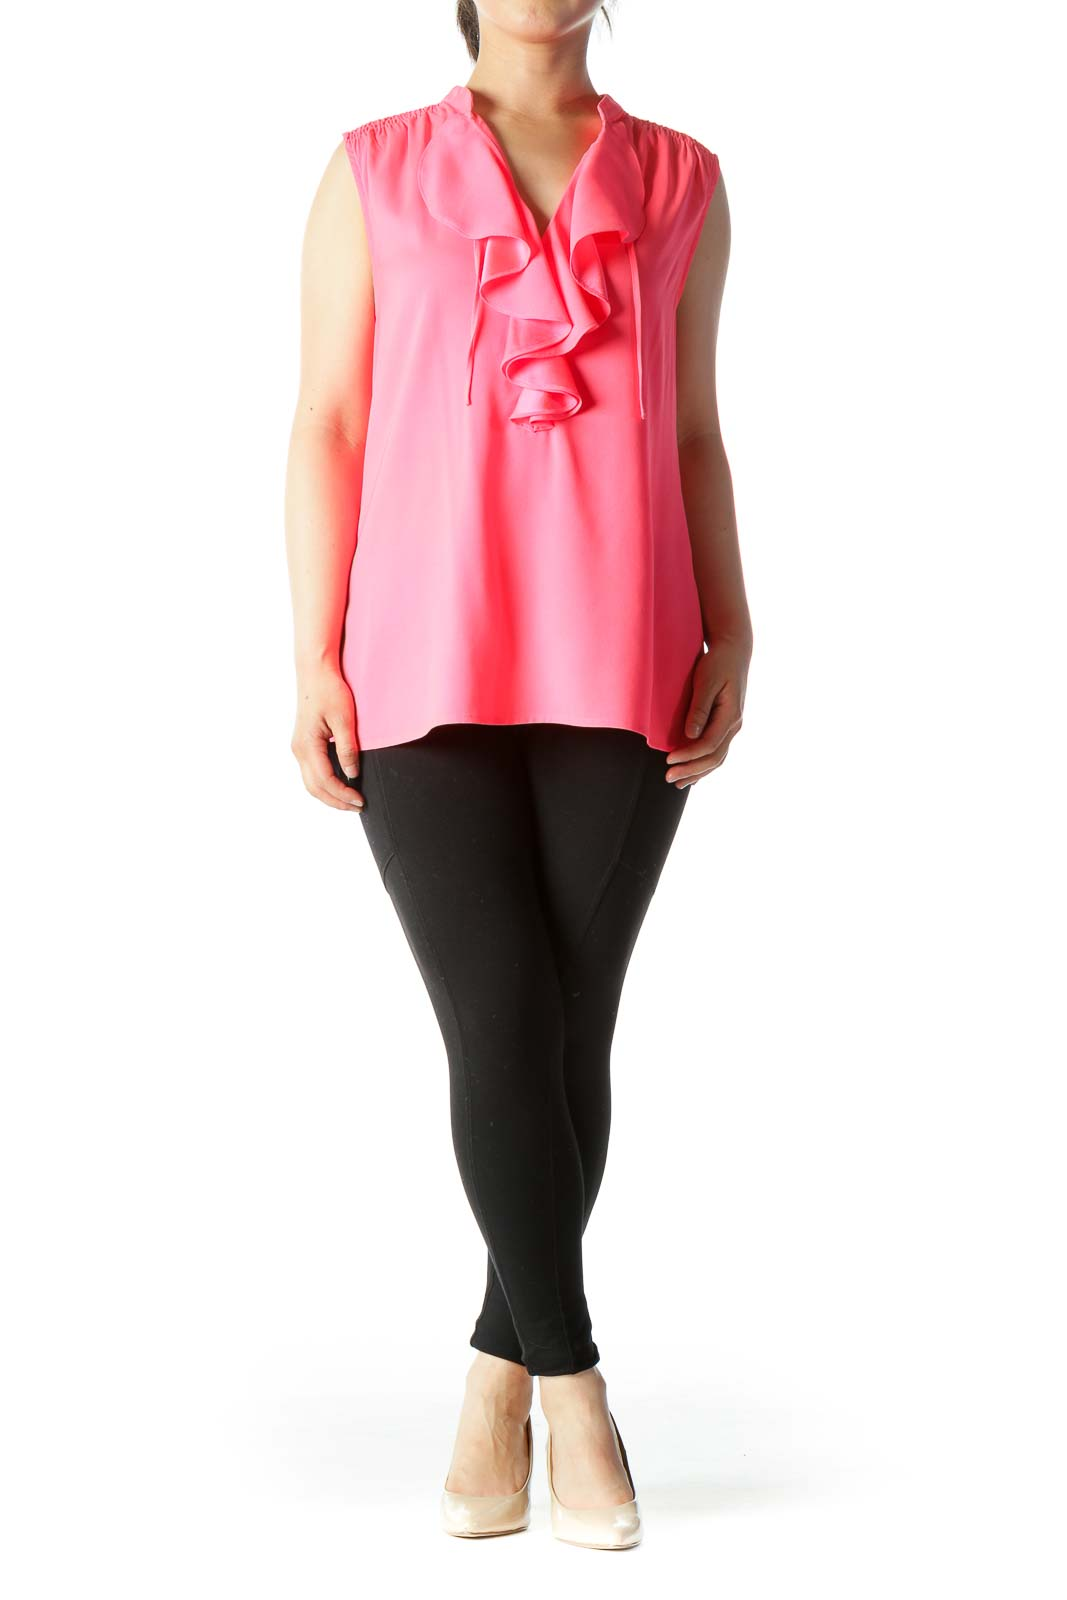 Bright Pink Ruffled V-Neck Stretch Tank Top